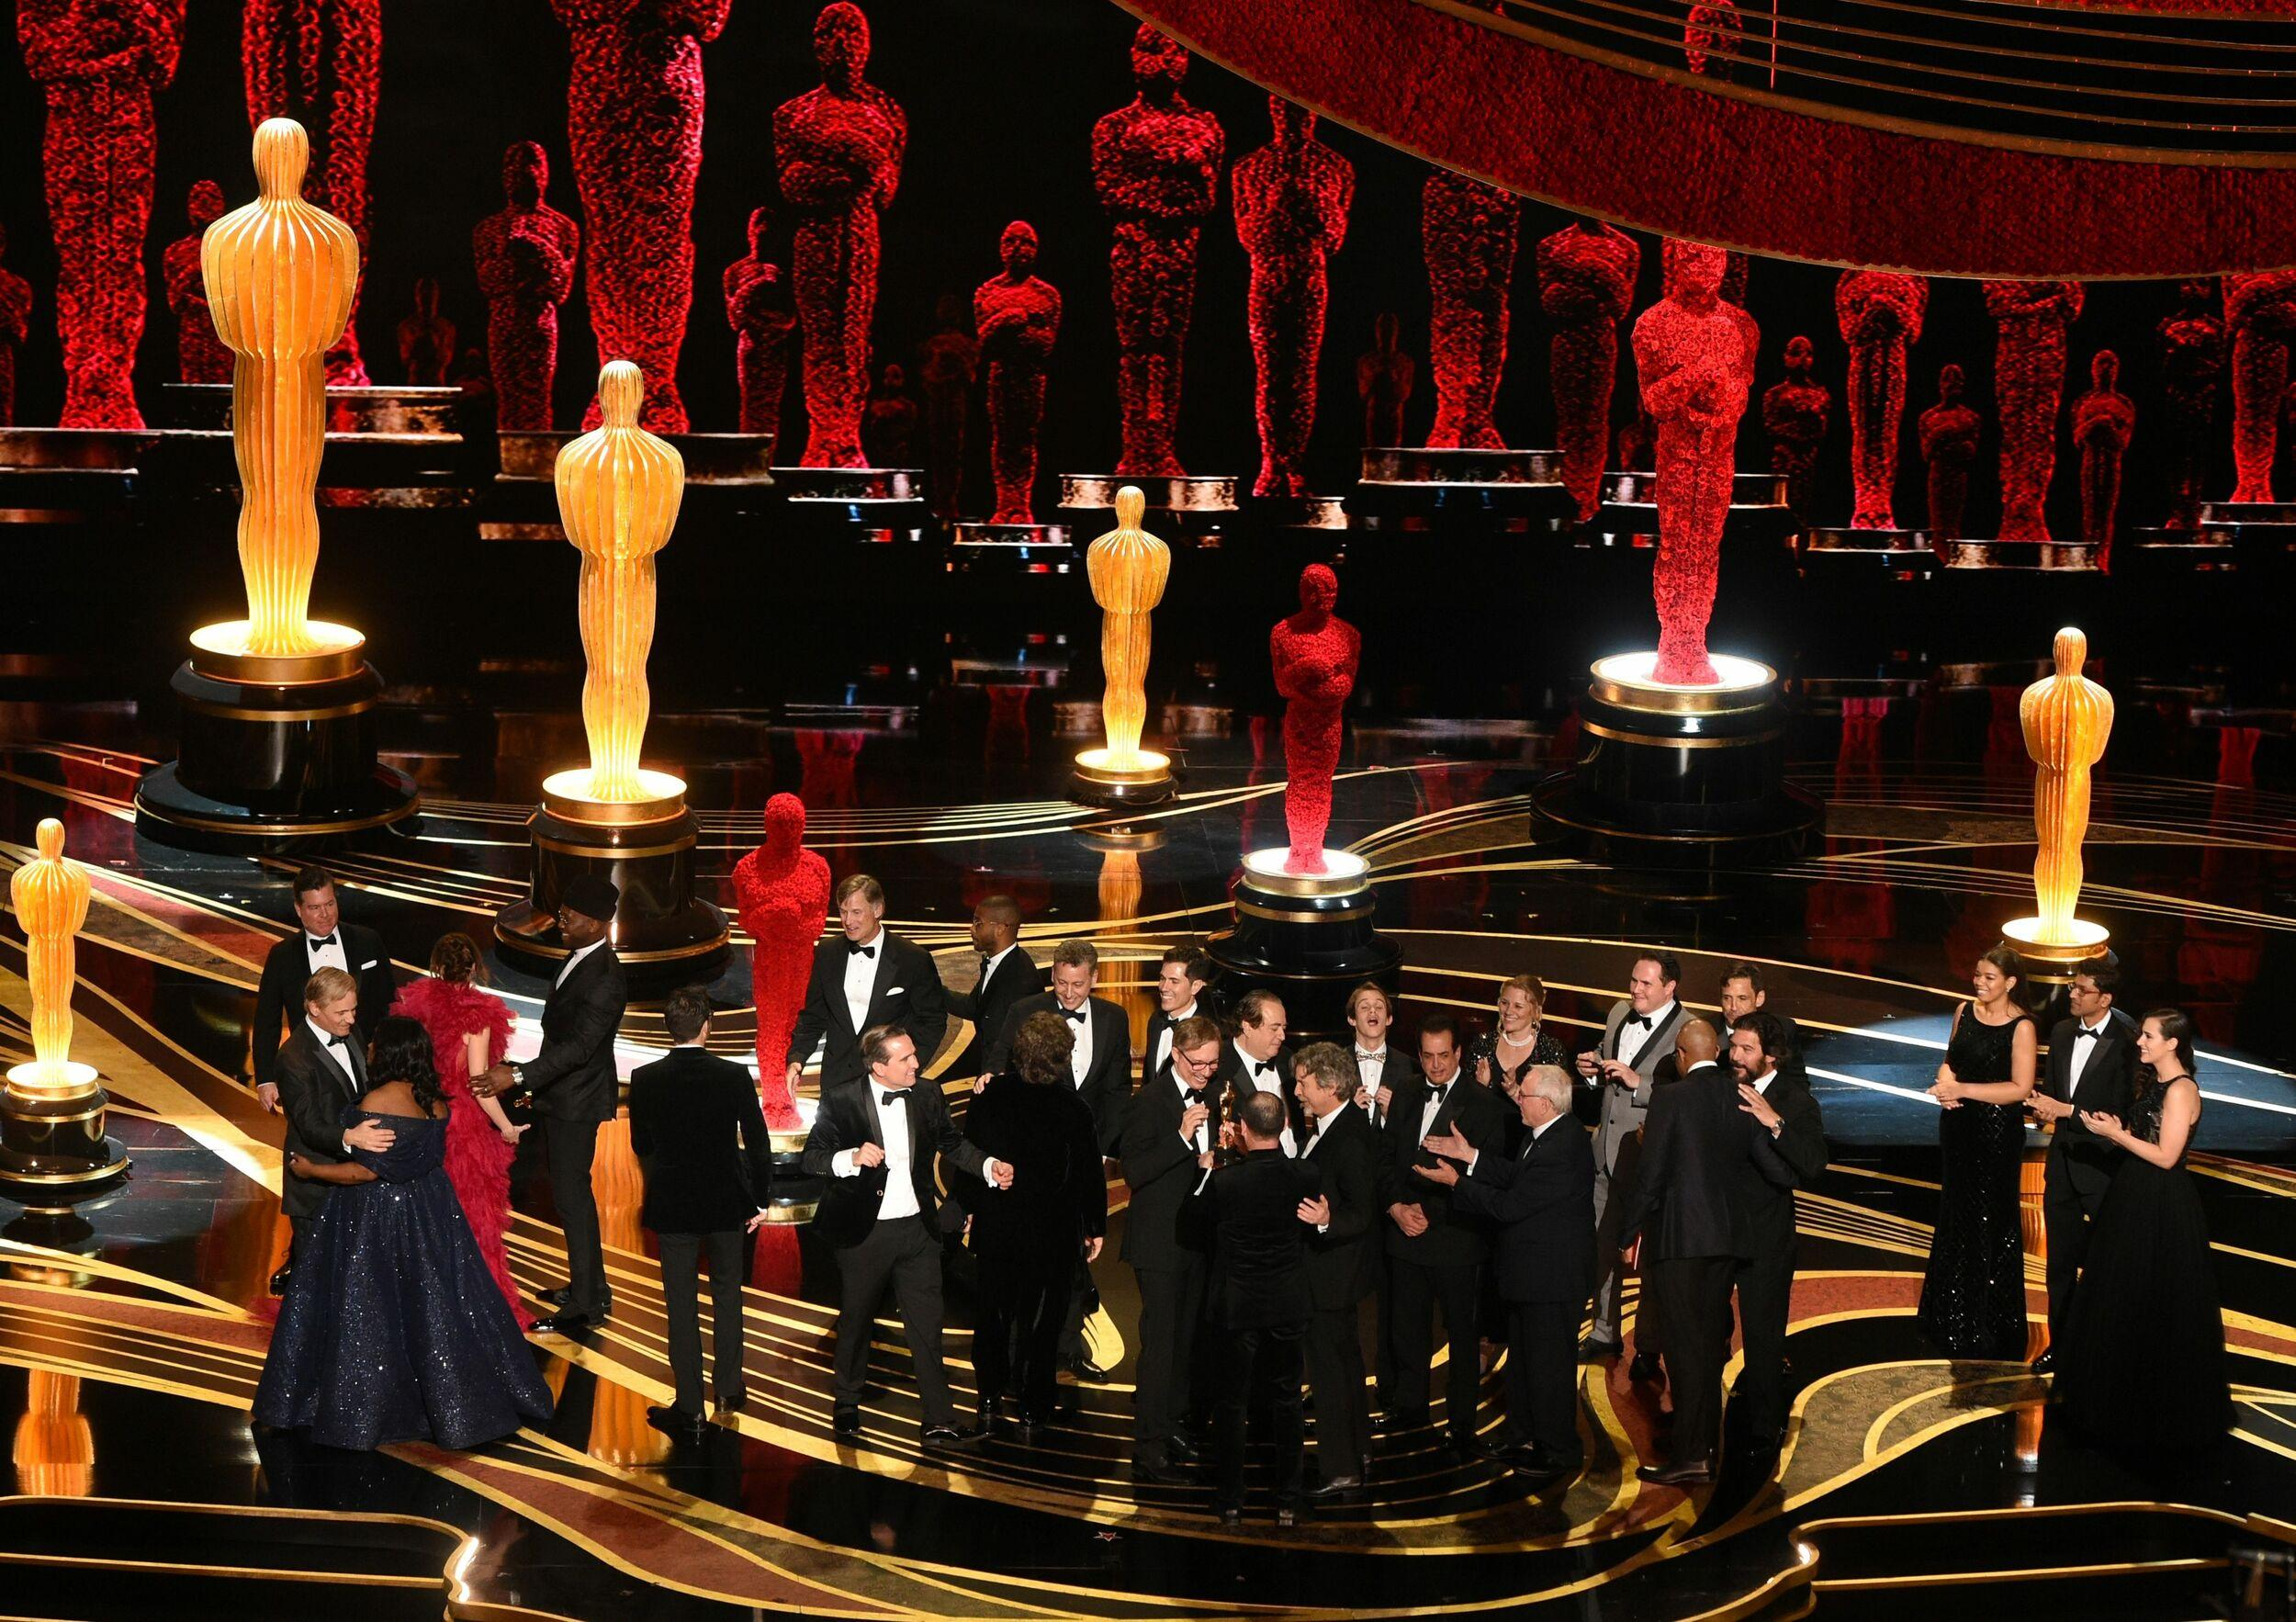 Producers of Best Picture nominee 'Green Book' Peter Farrelly and Nick Vallelonga accepts the award for Best Picture with the whole crew on stage during the 91st Annual Academy Awards at the Dolby Theatre in Hollywood, California on February 24, 2019. (Photo by VALERIE MACON / AFP)        (Photo credit should read VALERIE MACON/AFP/Getty Images)